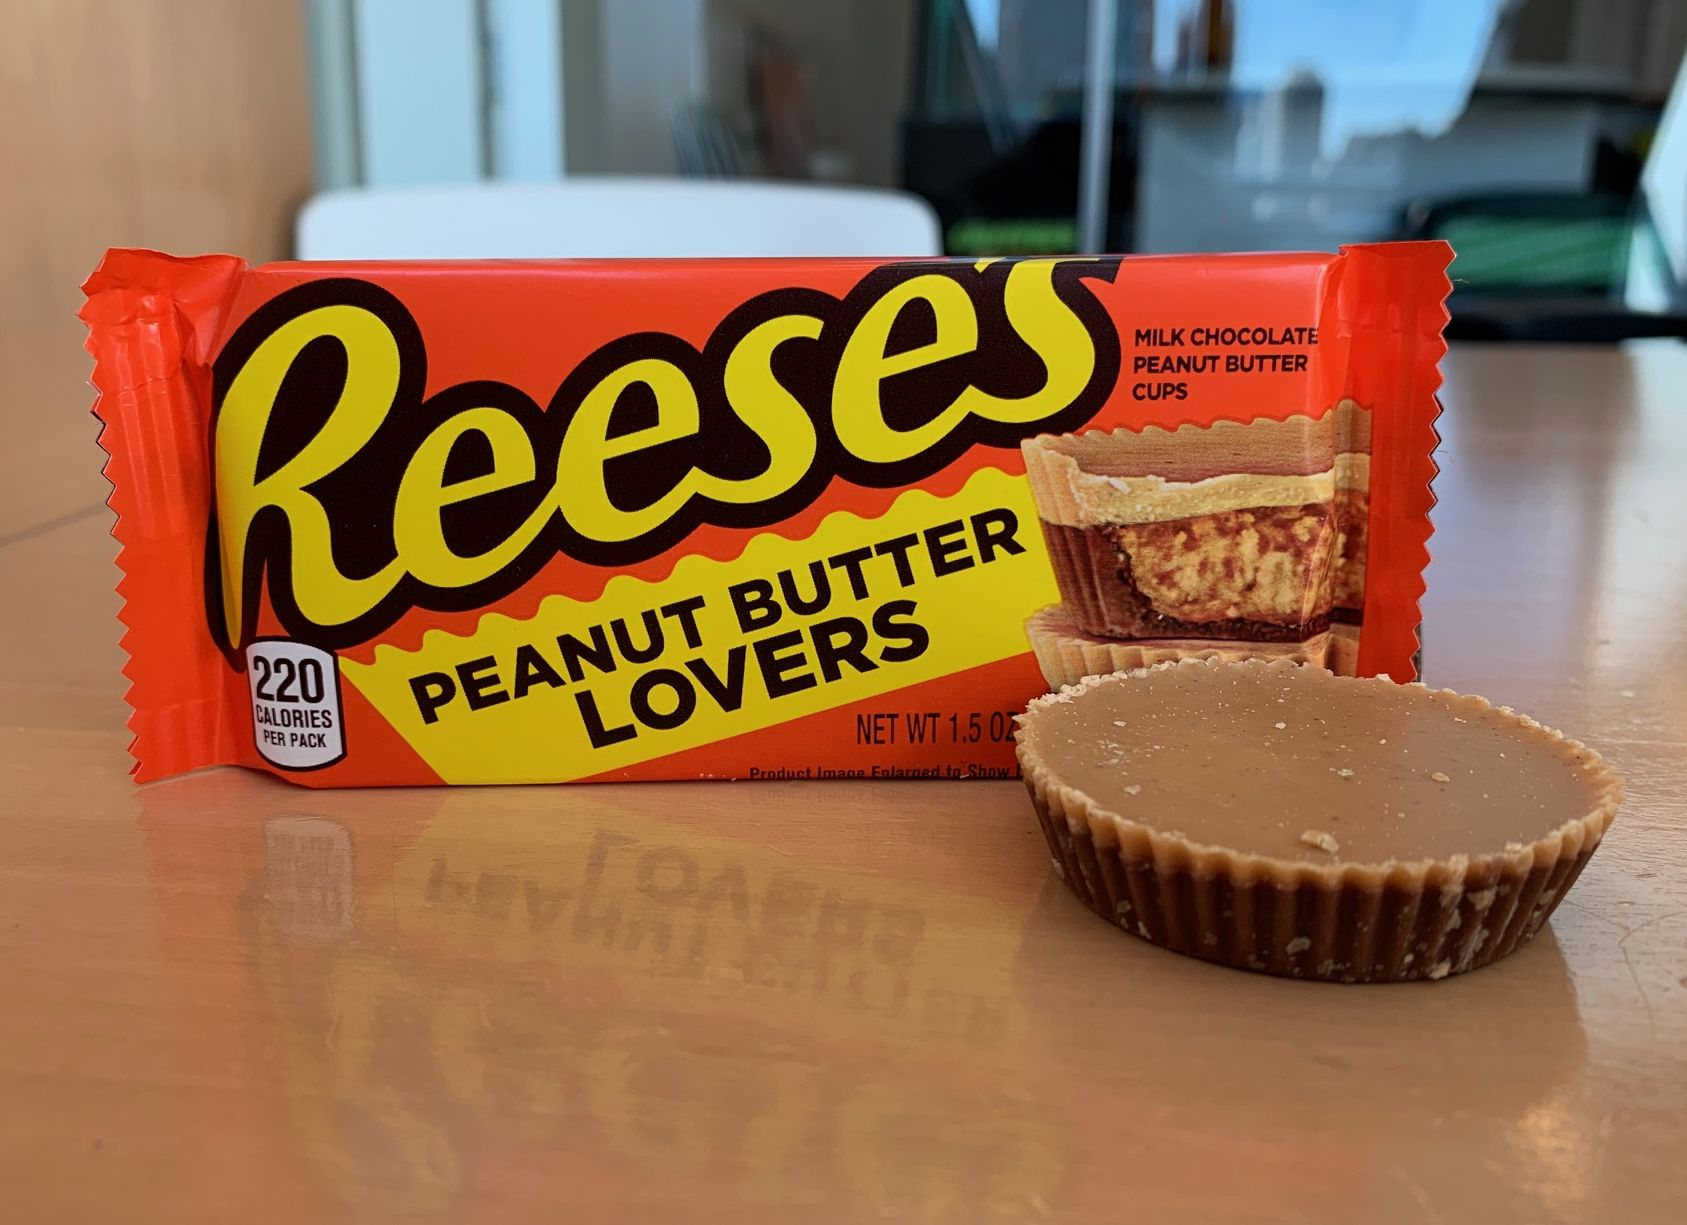 We Tried the New Reese's Cup Made Strictly For Peanut Butter Lovers